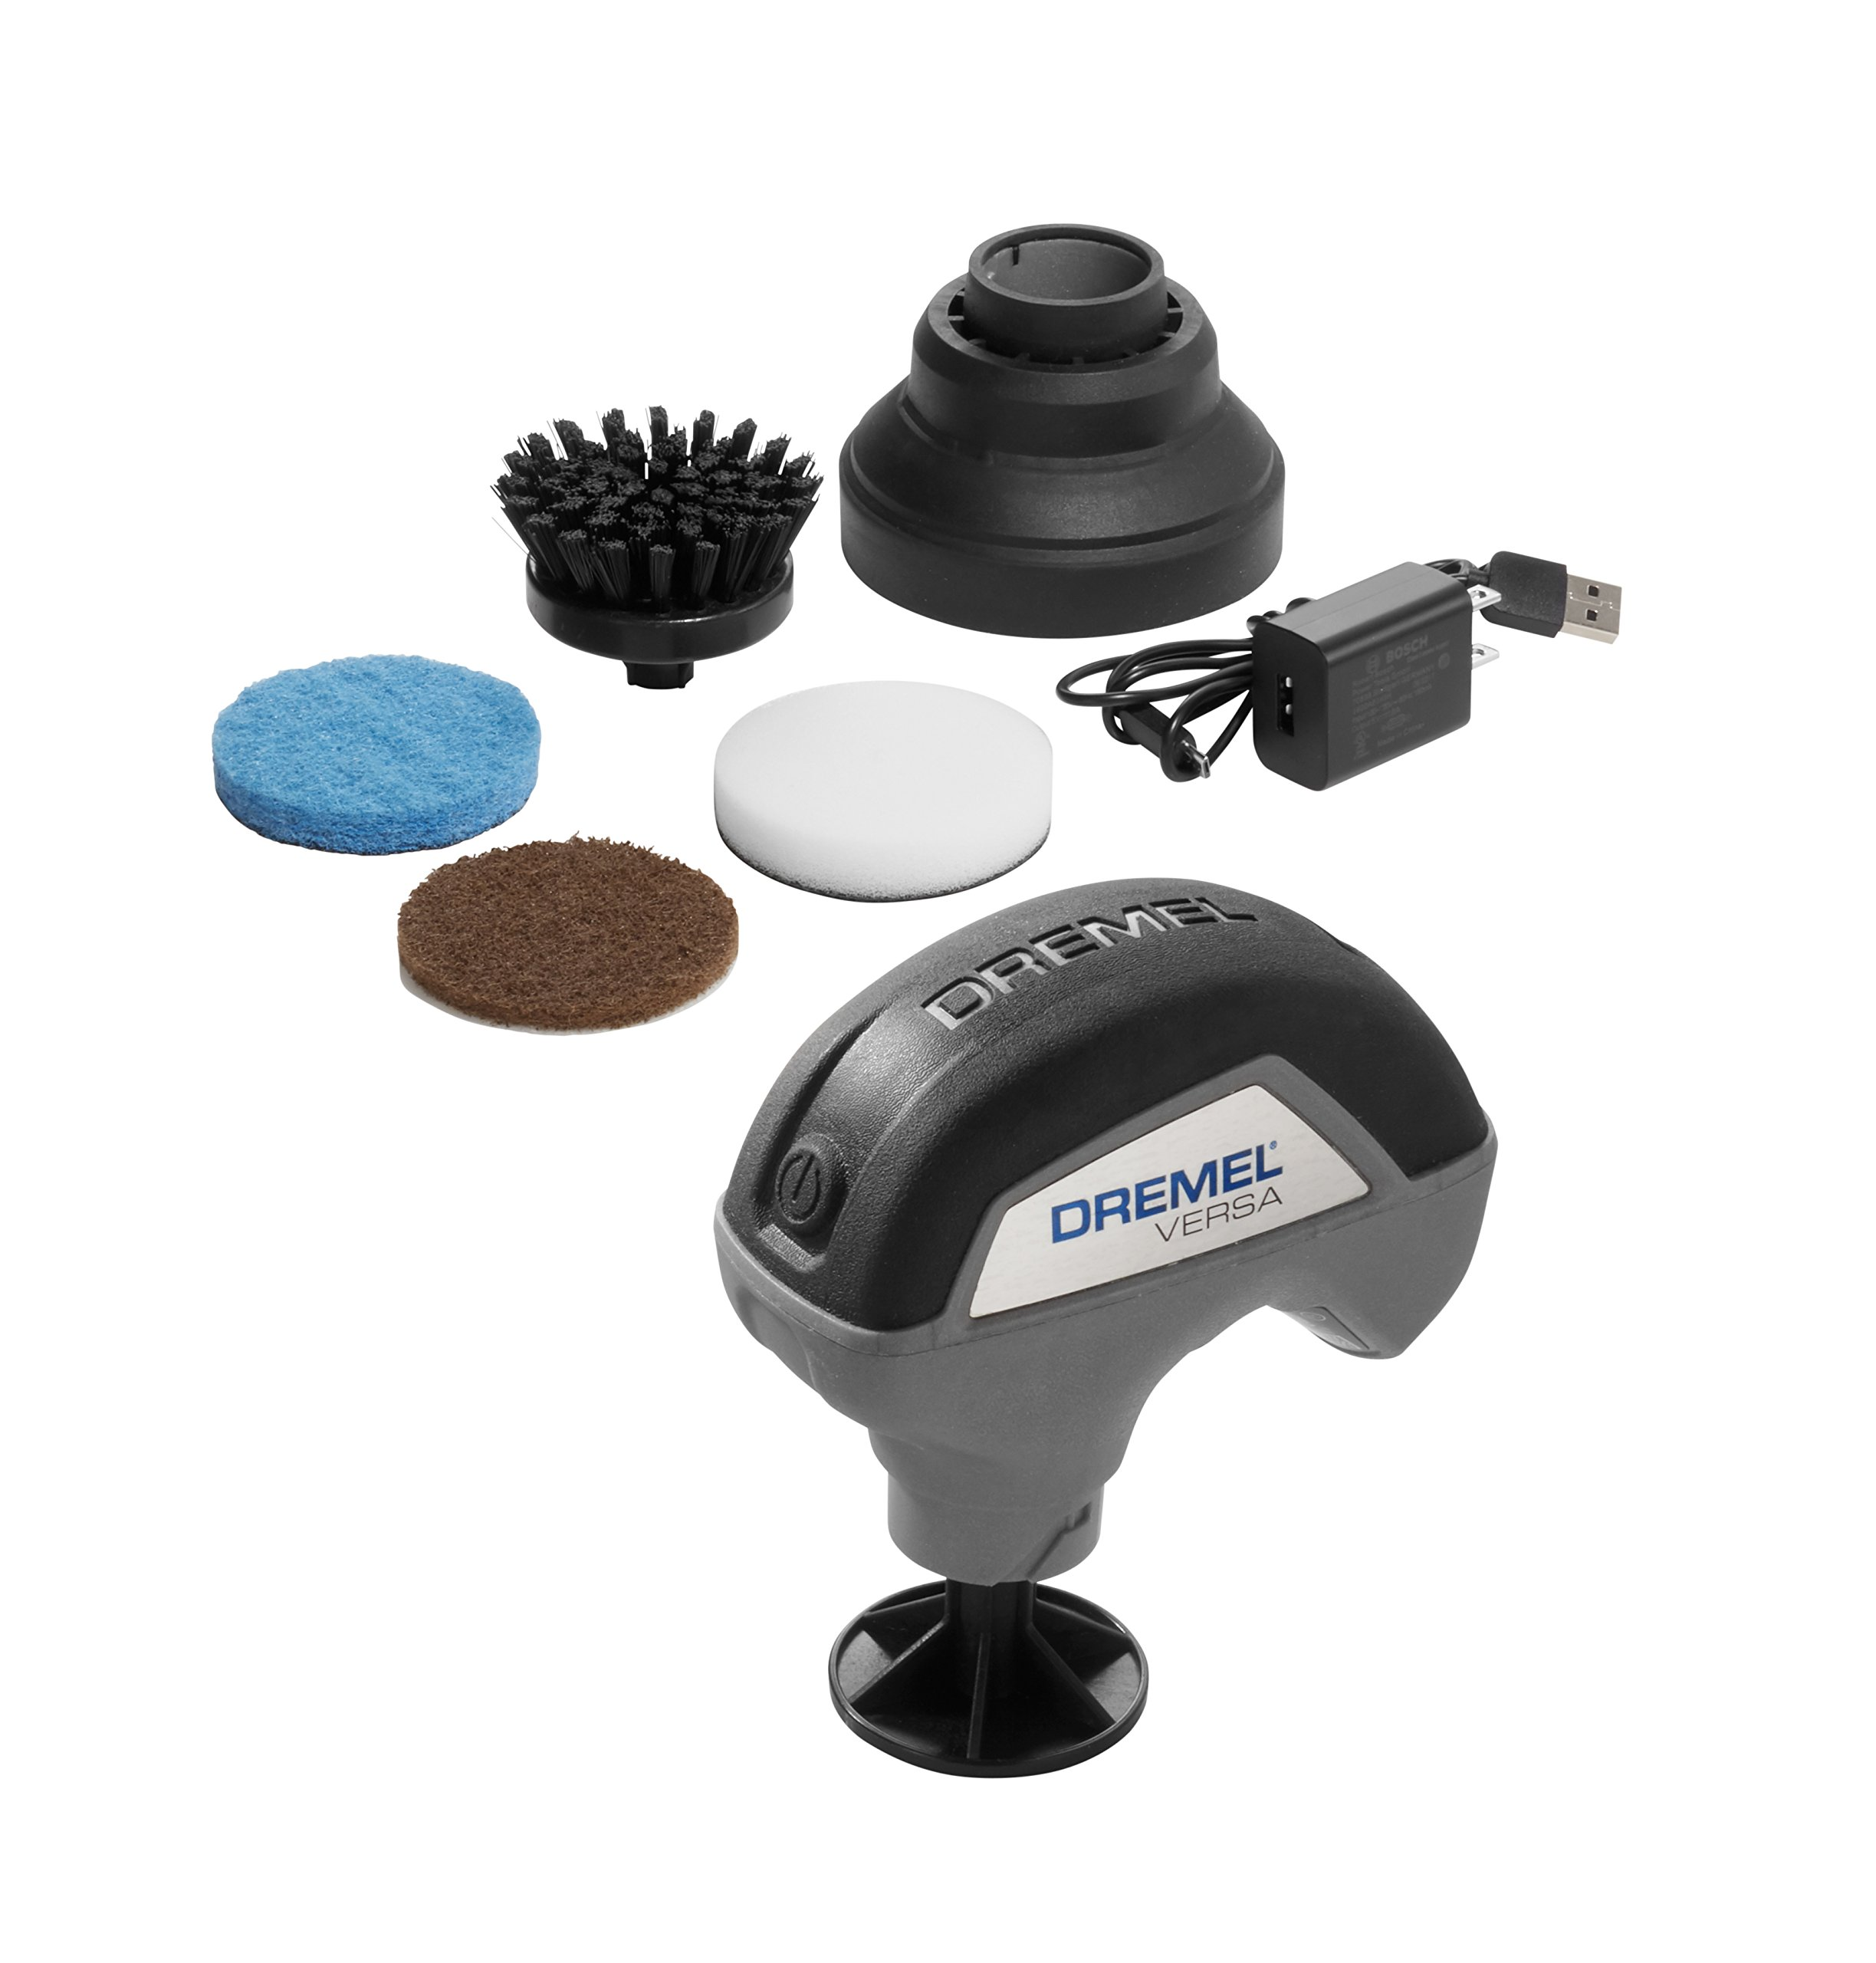 Dremel PC10-01 Versa USB Cordless Lithium-Ion Power Cleaner Tool